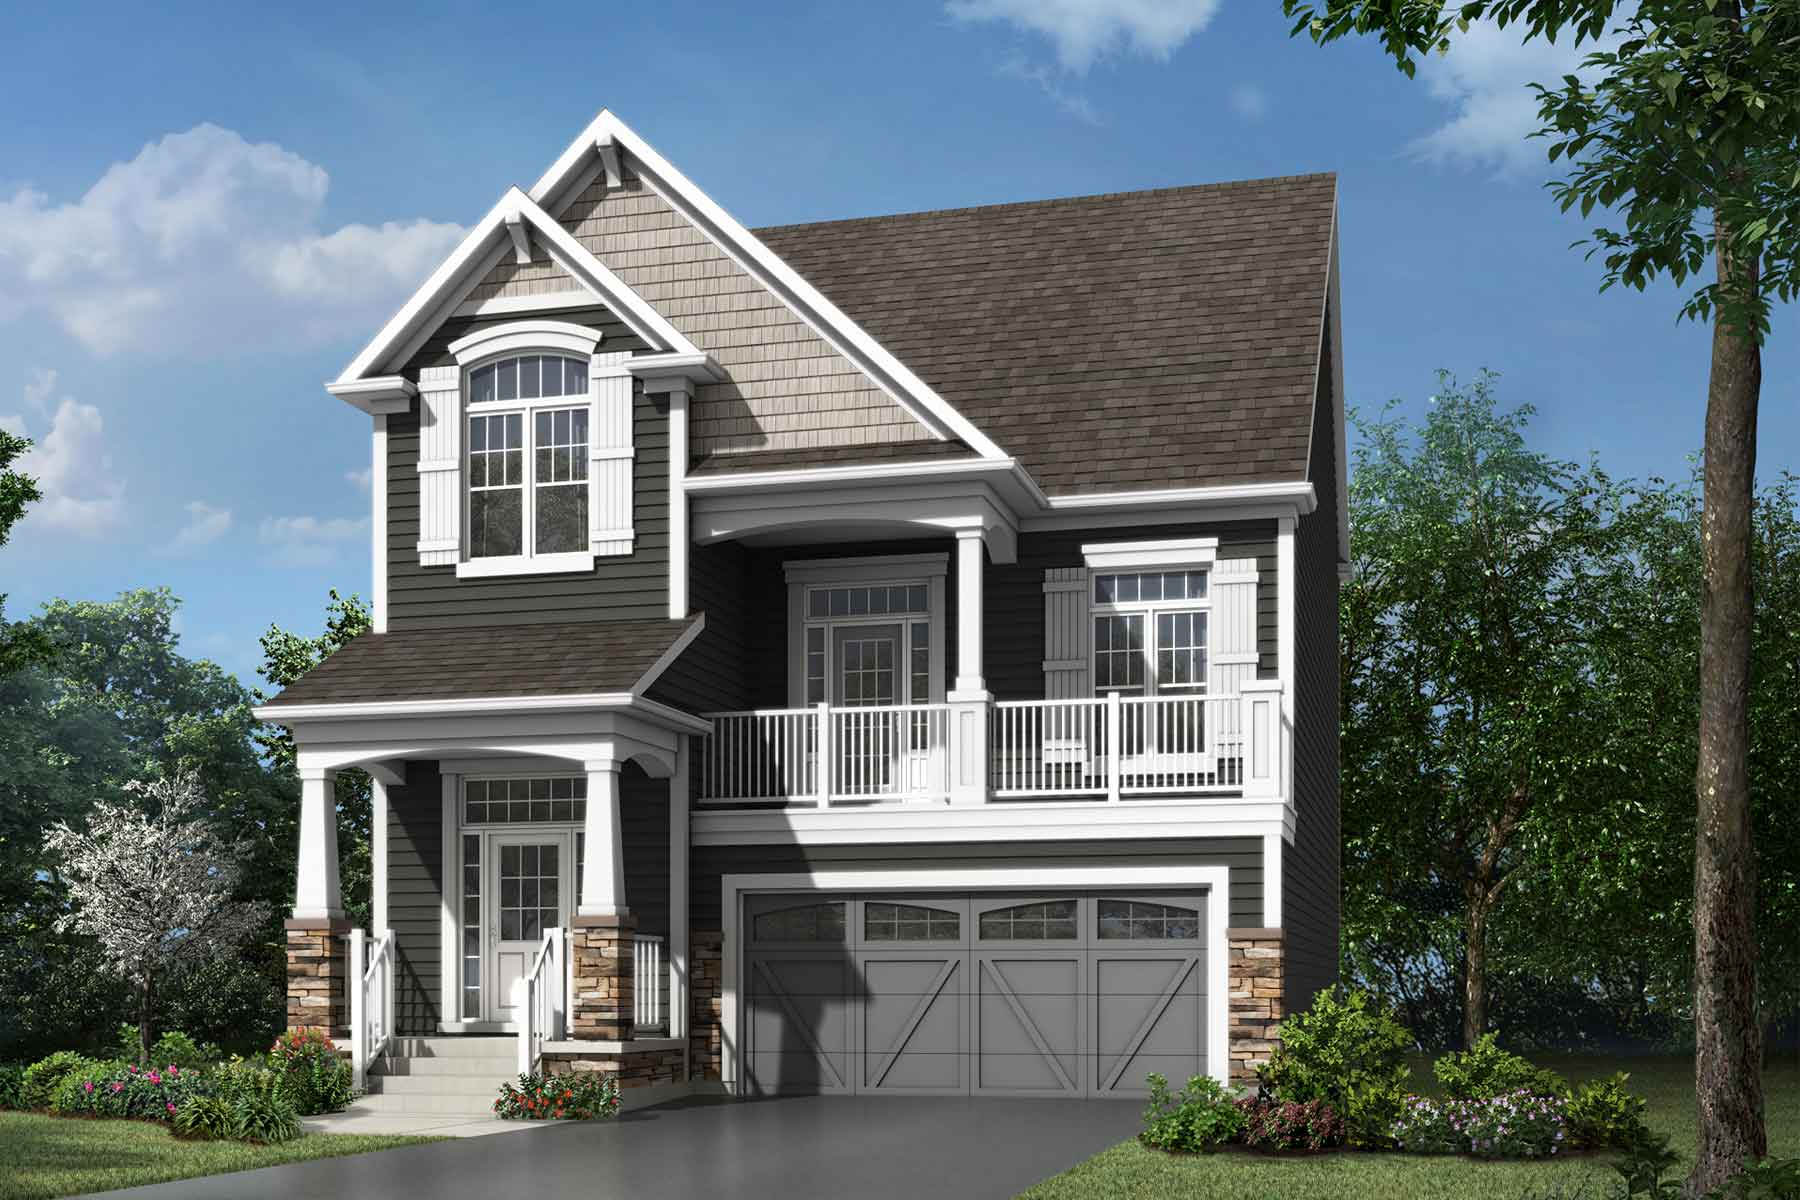 Yamnuska Plan elevationcraftsman_cityscape_onyx at Cityscape in Calgary Alberta by Mattamy Homes